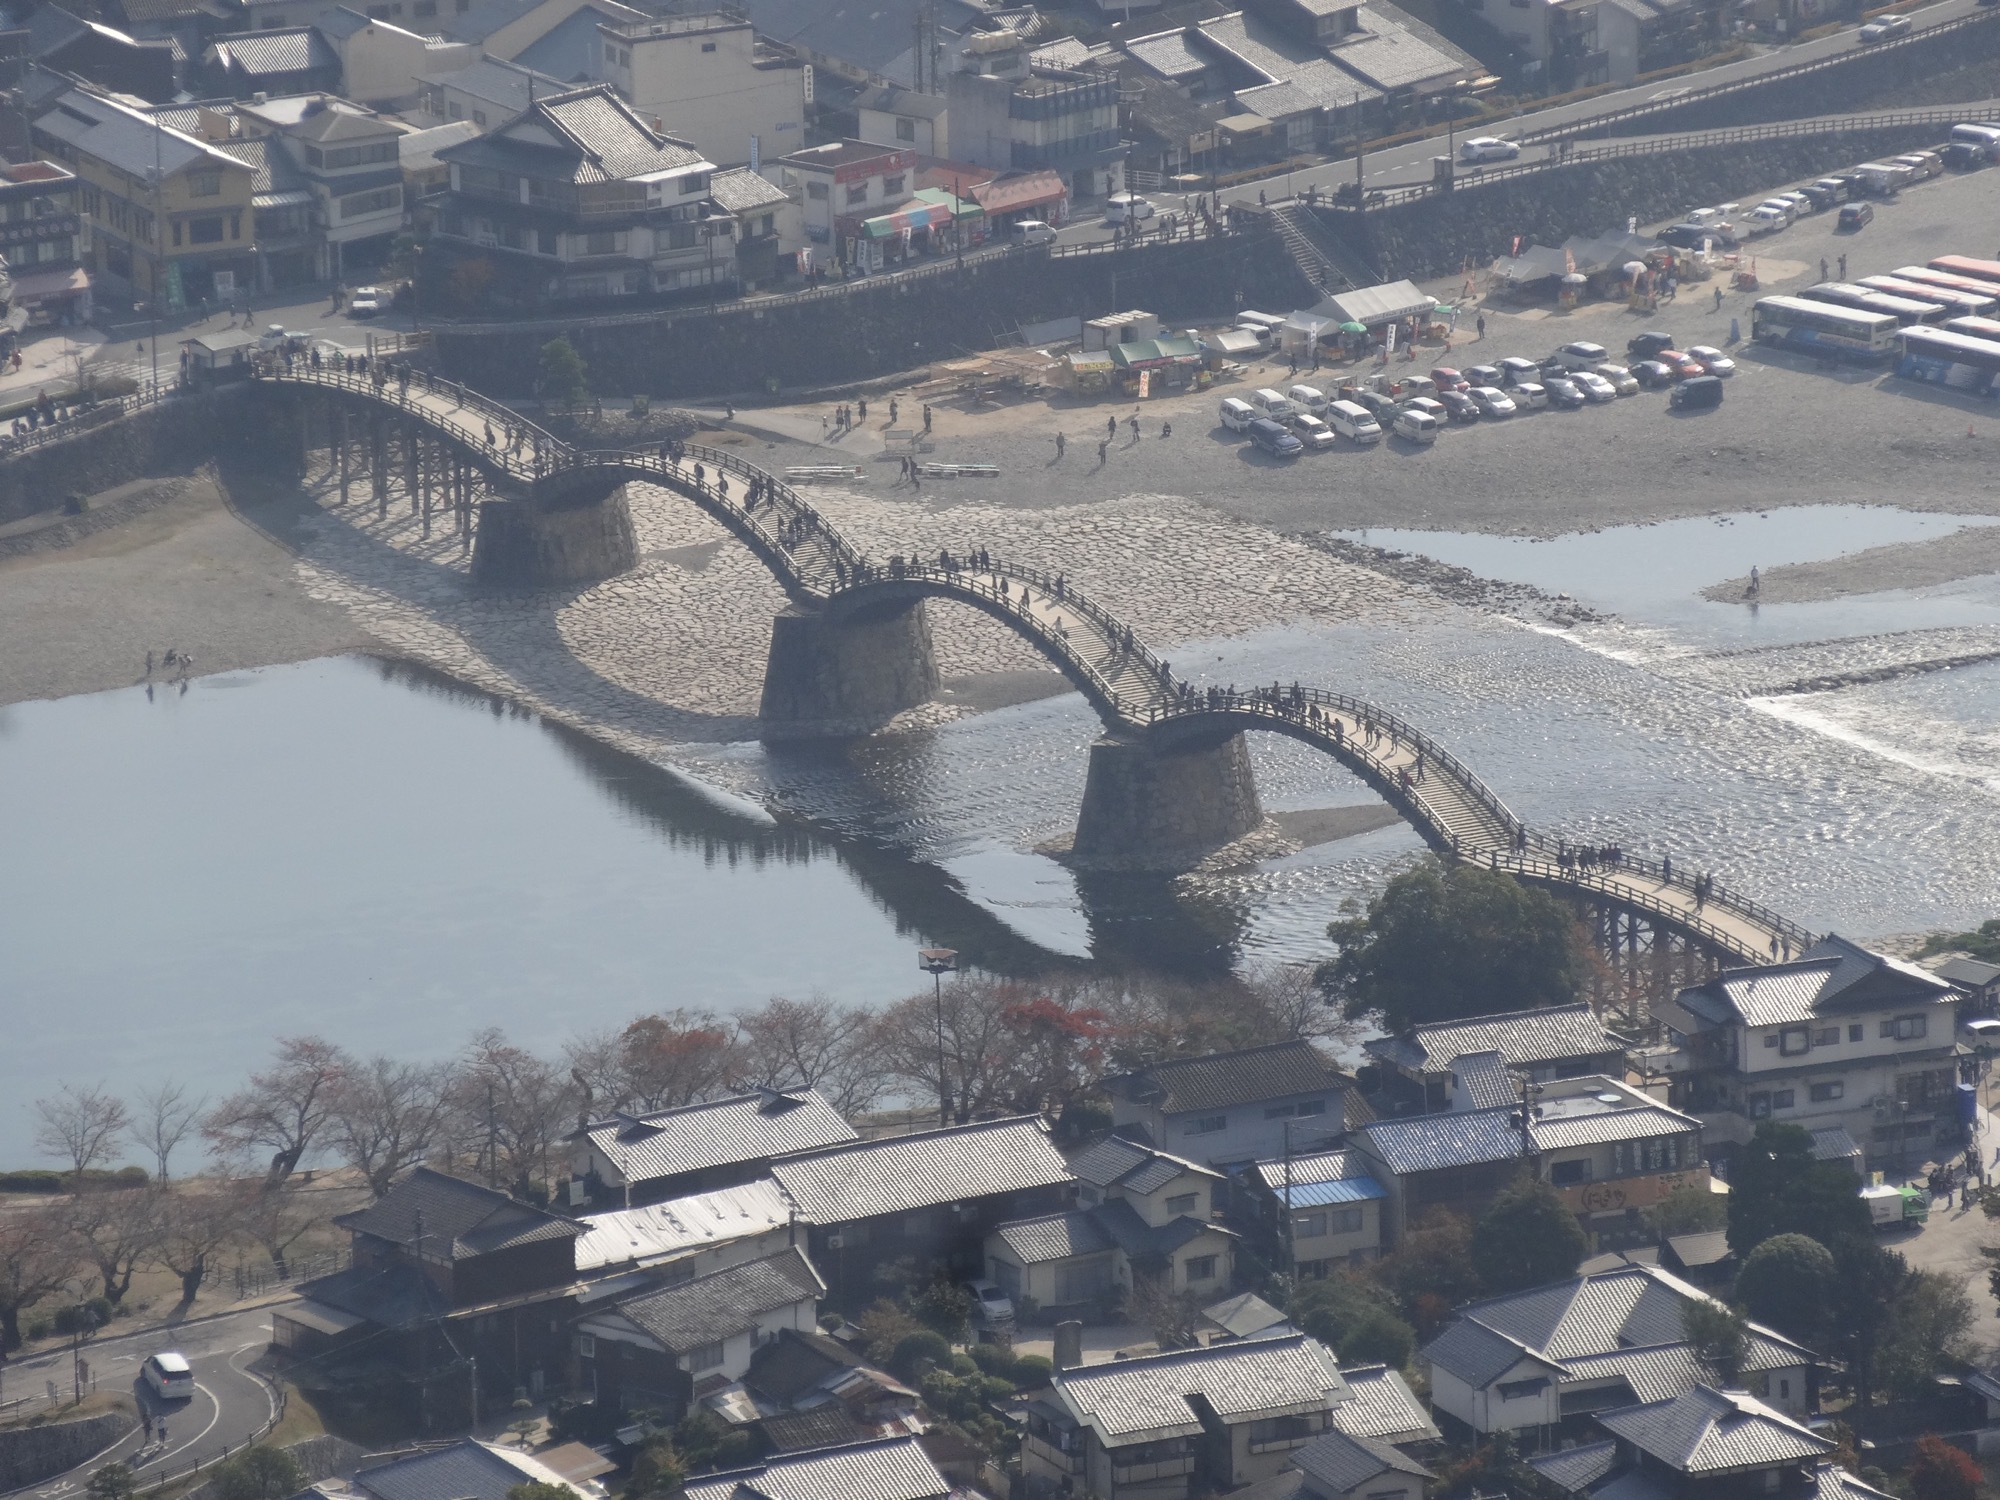 Kintai Bridge seen from Iwakuni Castle